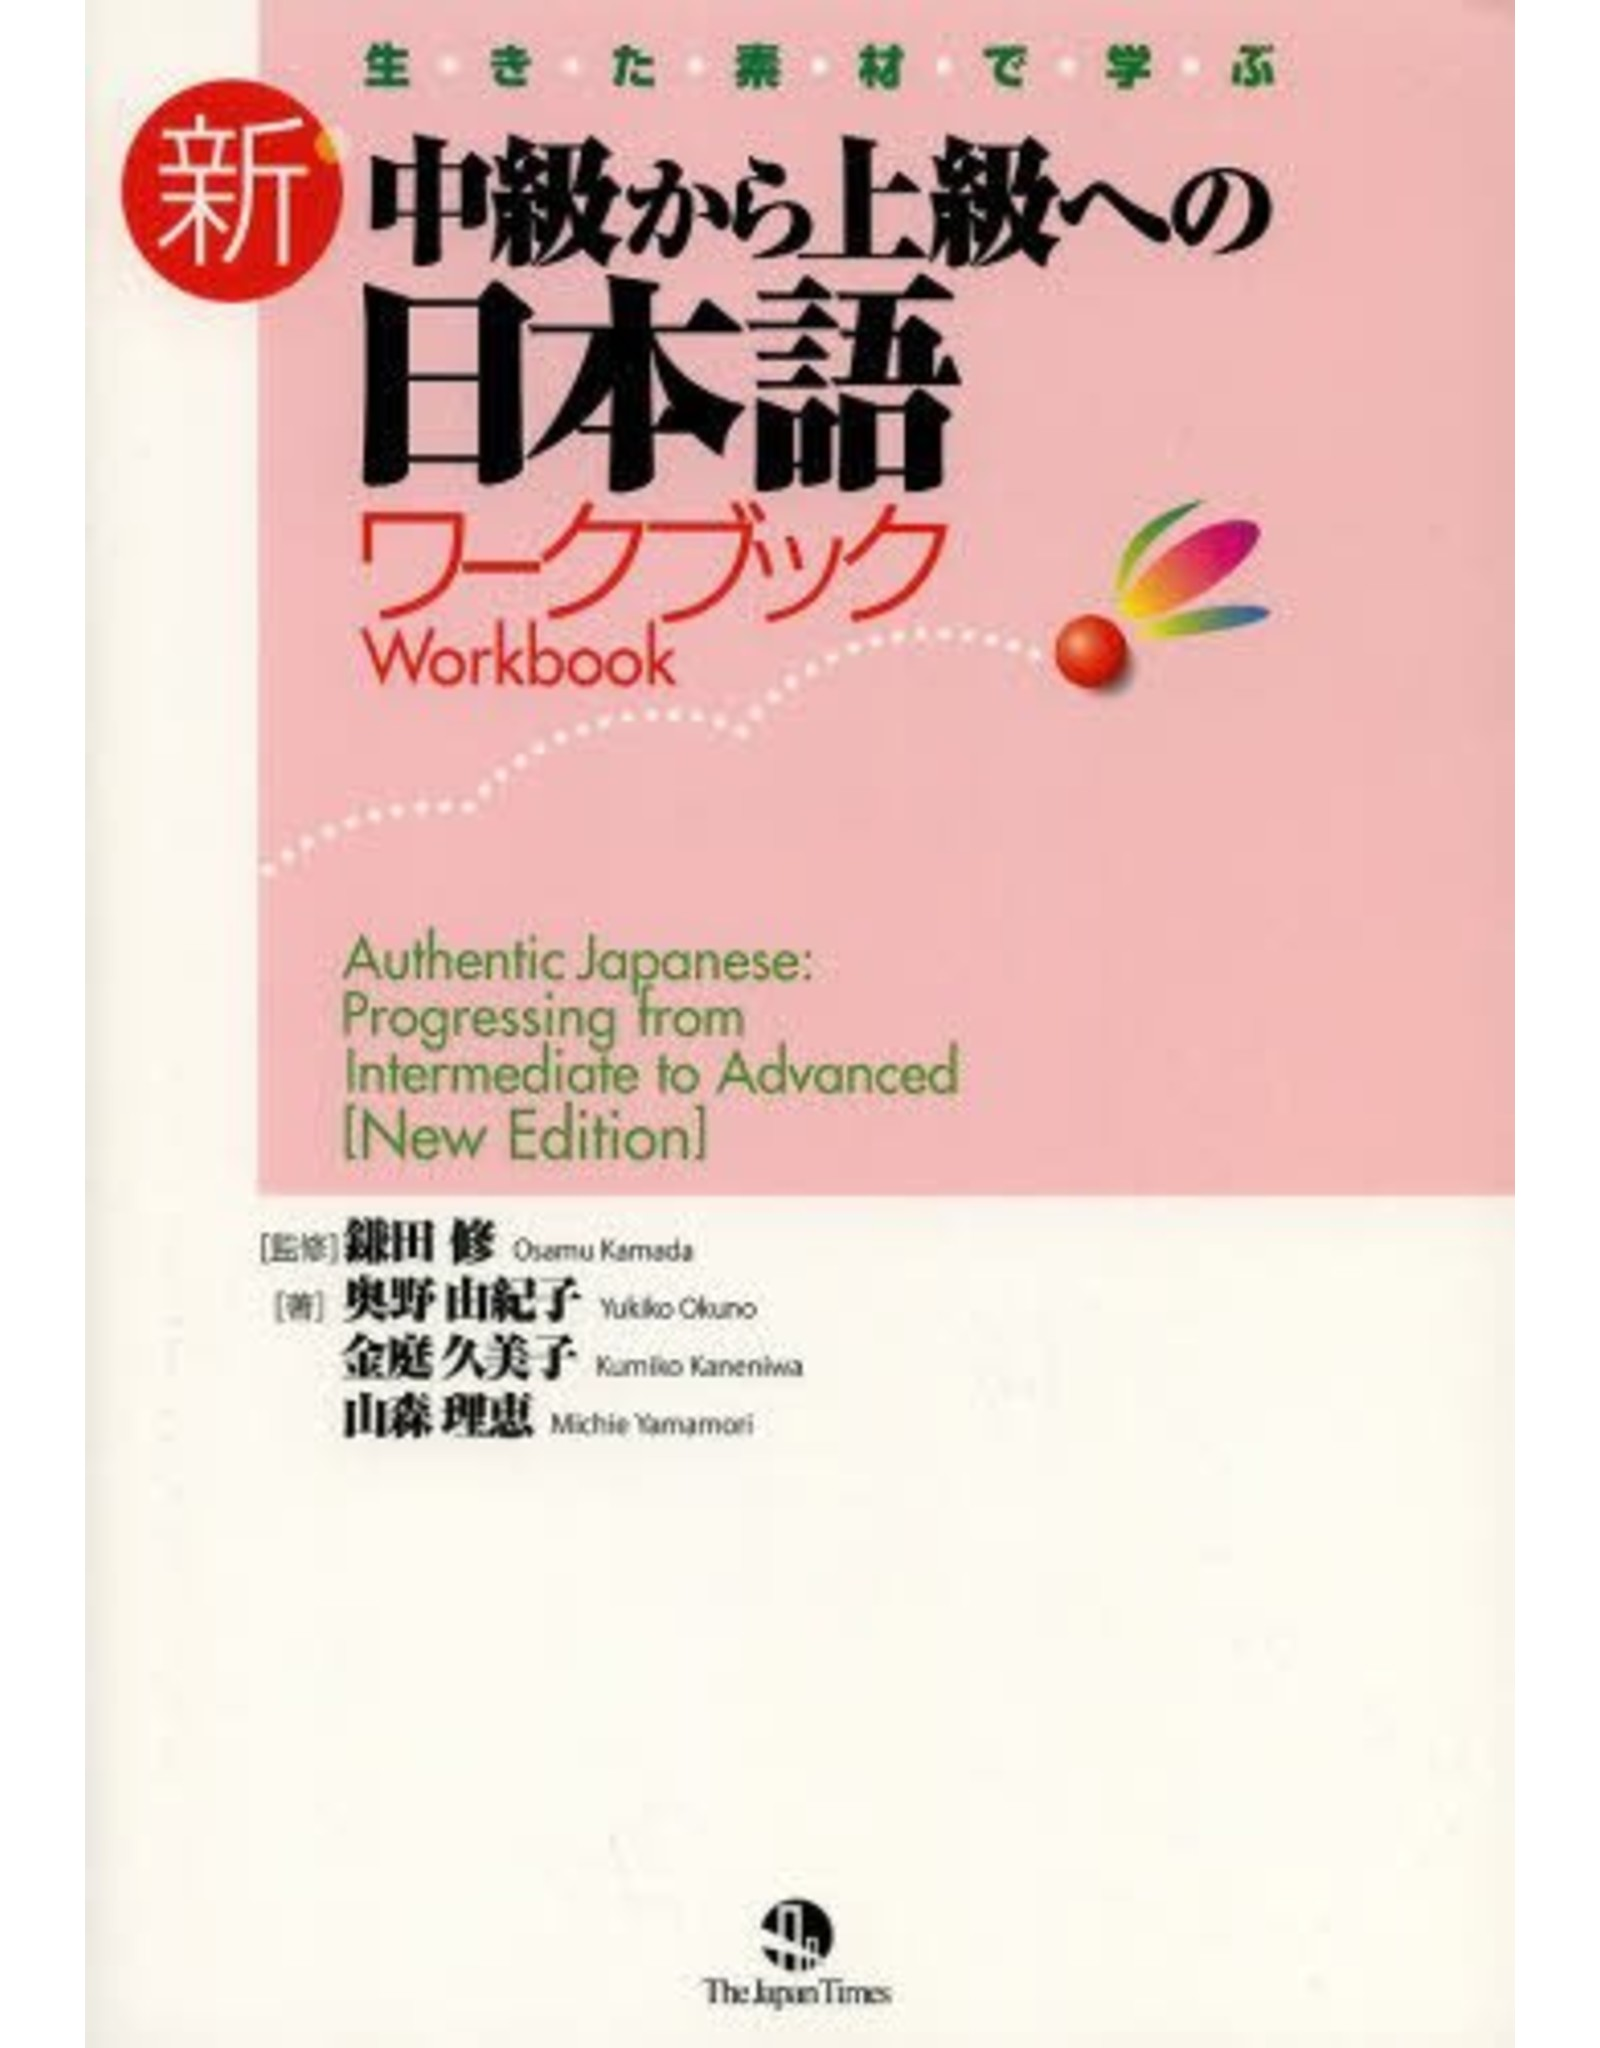 JAPAN TIMES AUTHENTIC JAPANESE: PROGRESSING FROM INTERMEDIATE TO ADVANCED WORKBOOK [NEW EDITION]